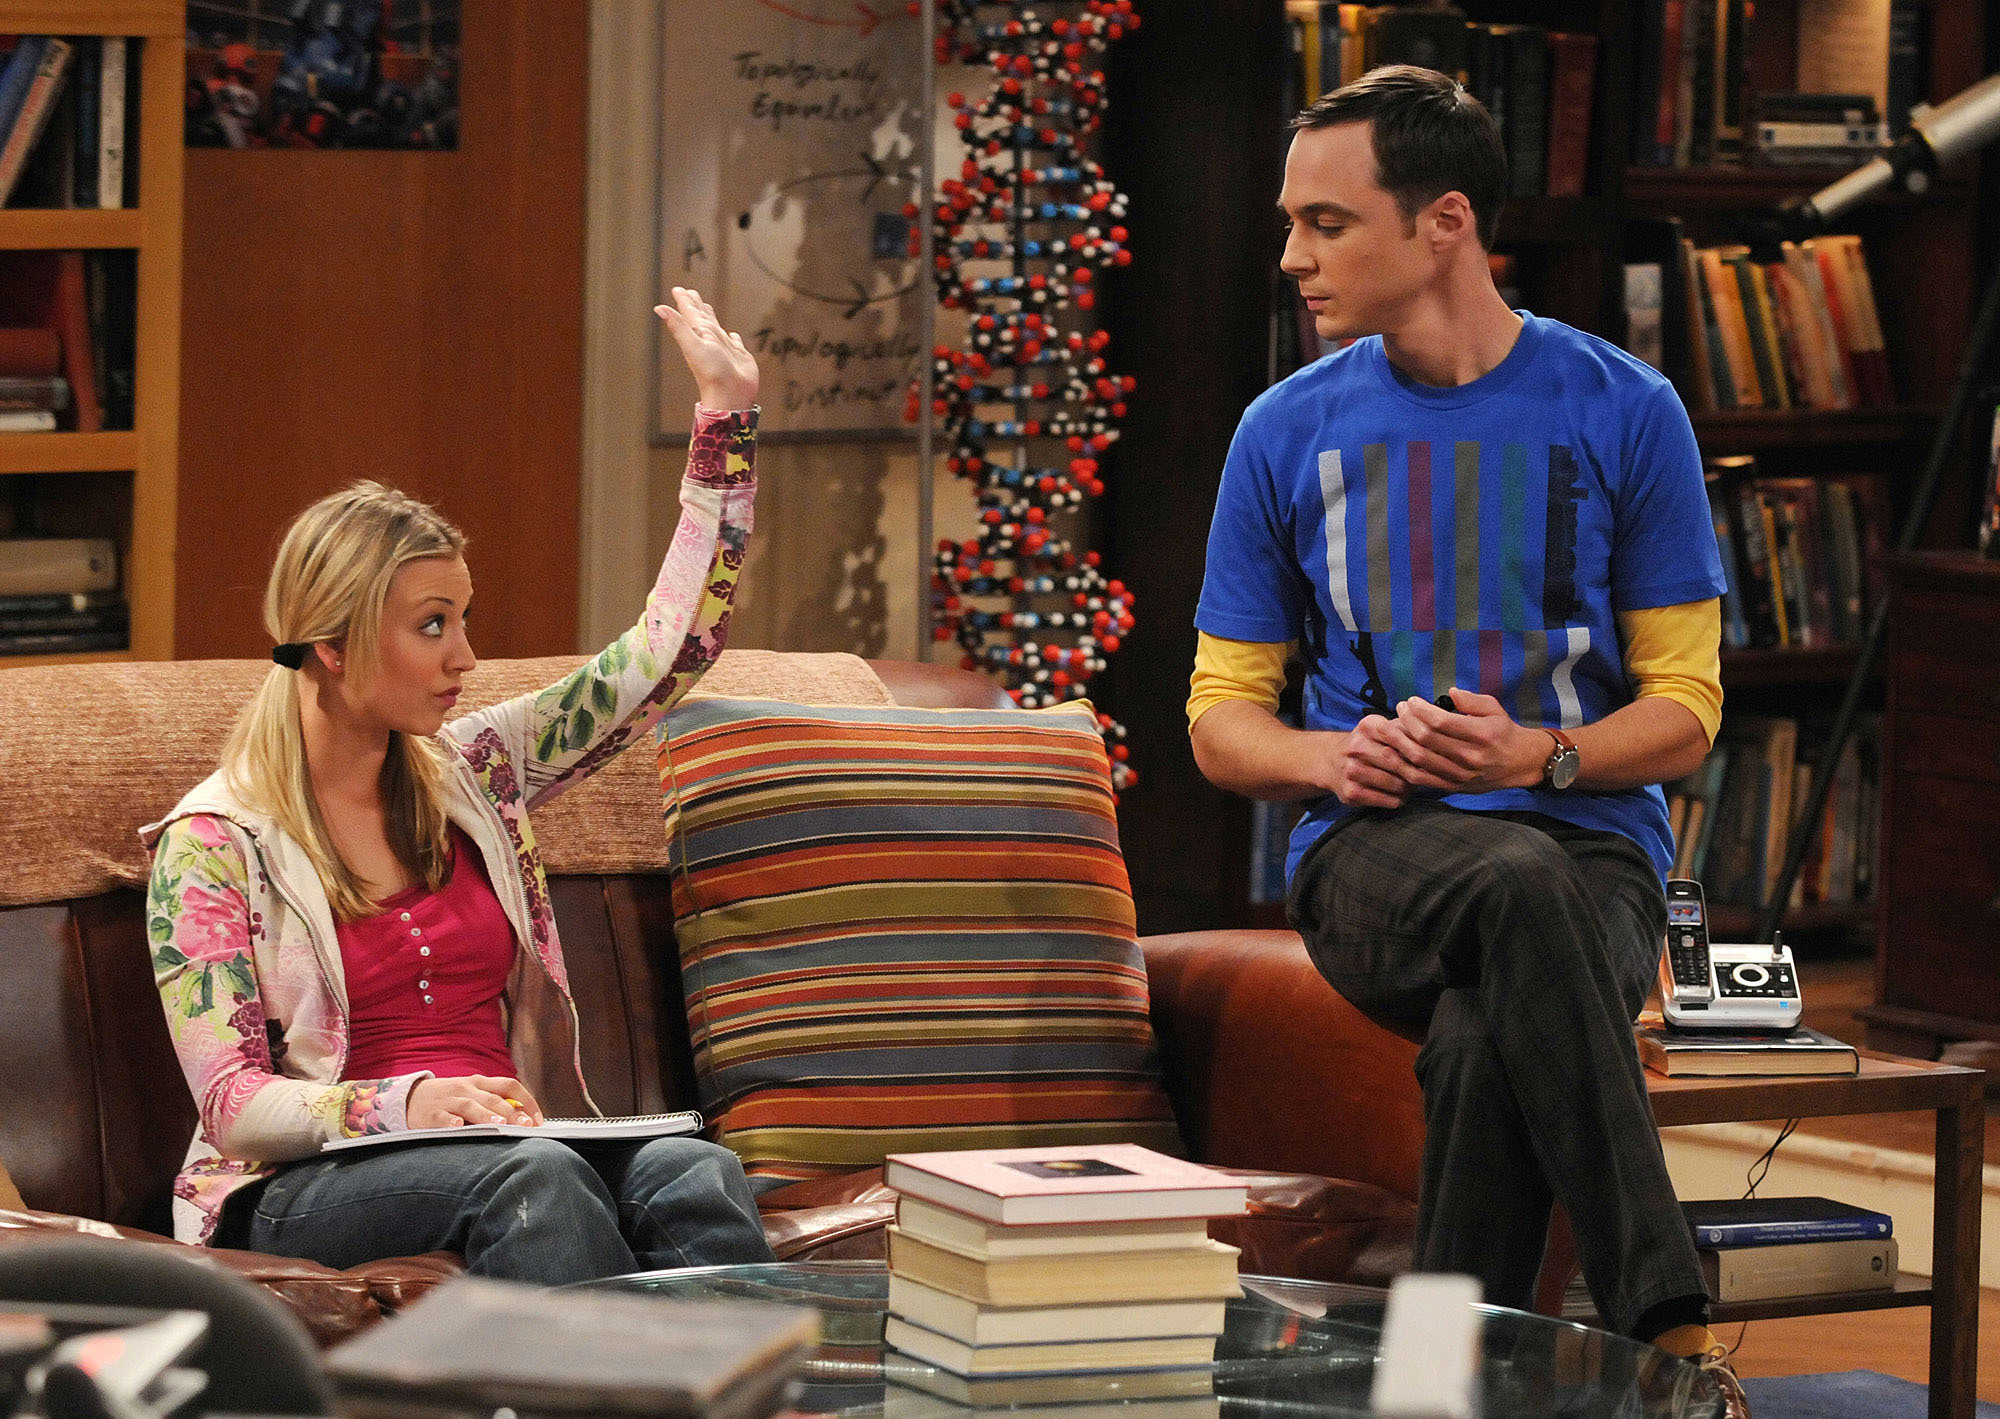 sheldon cooper and penny relationship trust